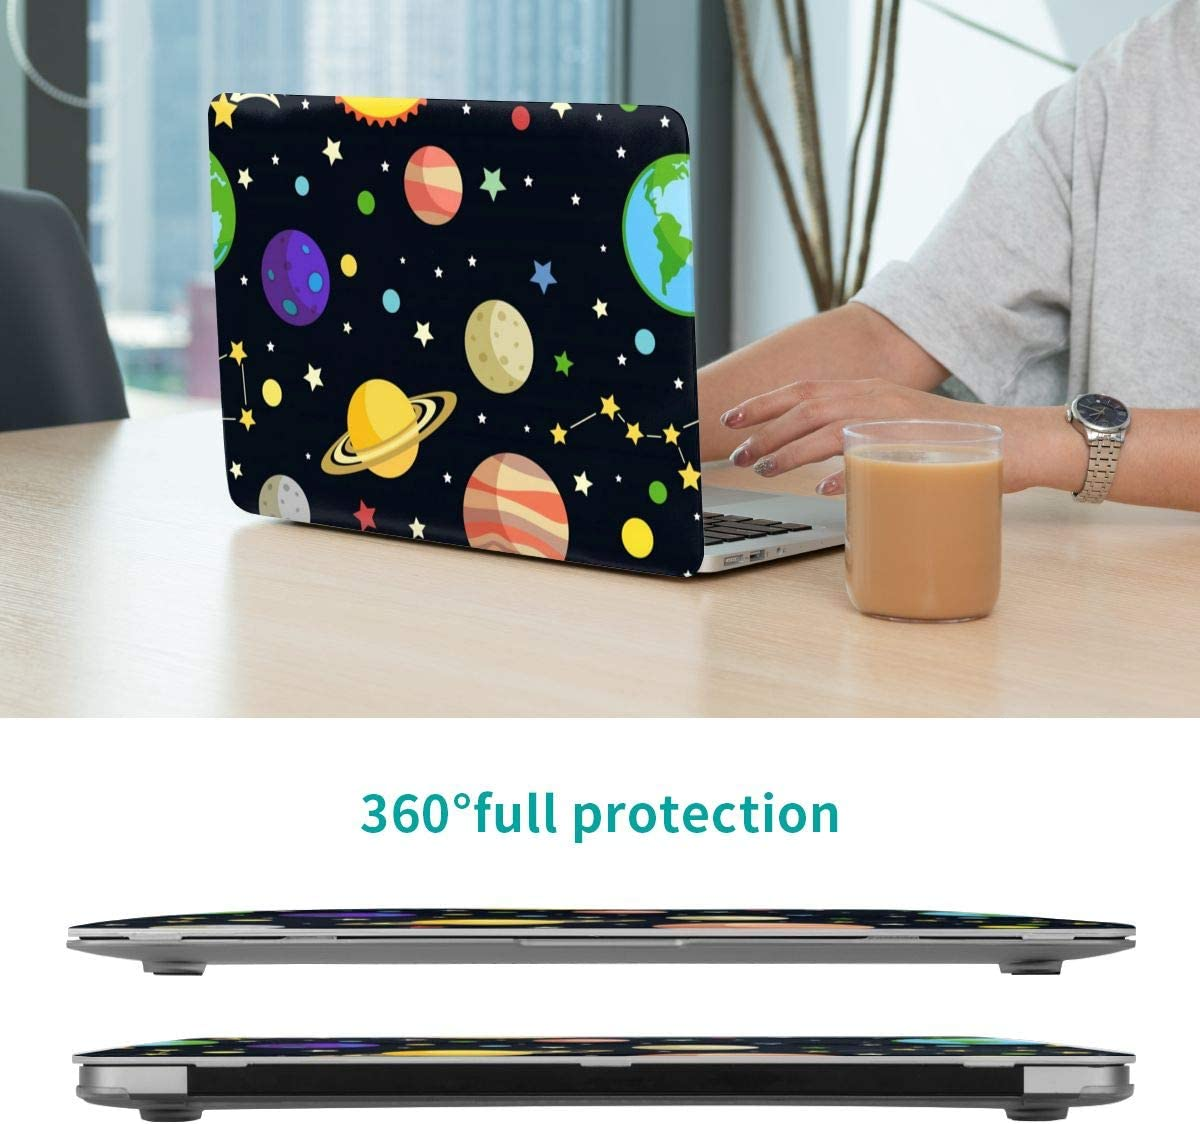 Tigers in The Jungle Compatible with MacBook Pro 13 Inch Case 2019 2018 2017 2016 Release A2159 A1989 A1706 A1708 Hard Case Shell Cover for Mac Pro 13 Inch with//Without Touch Bar